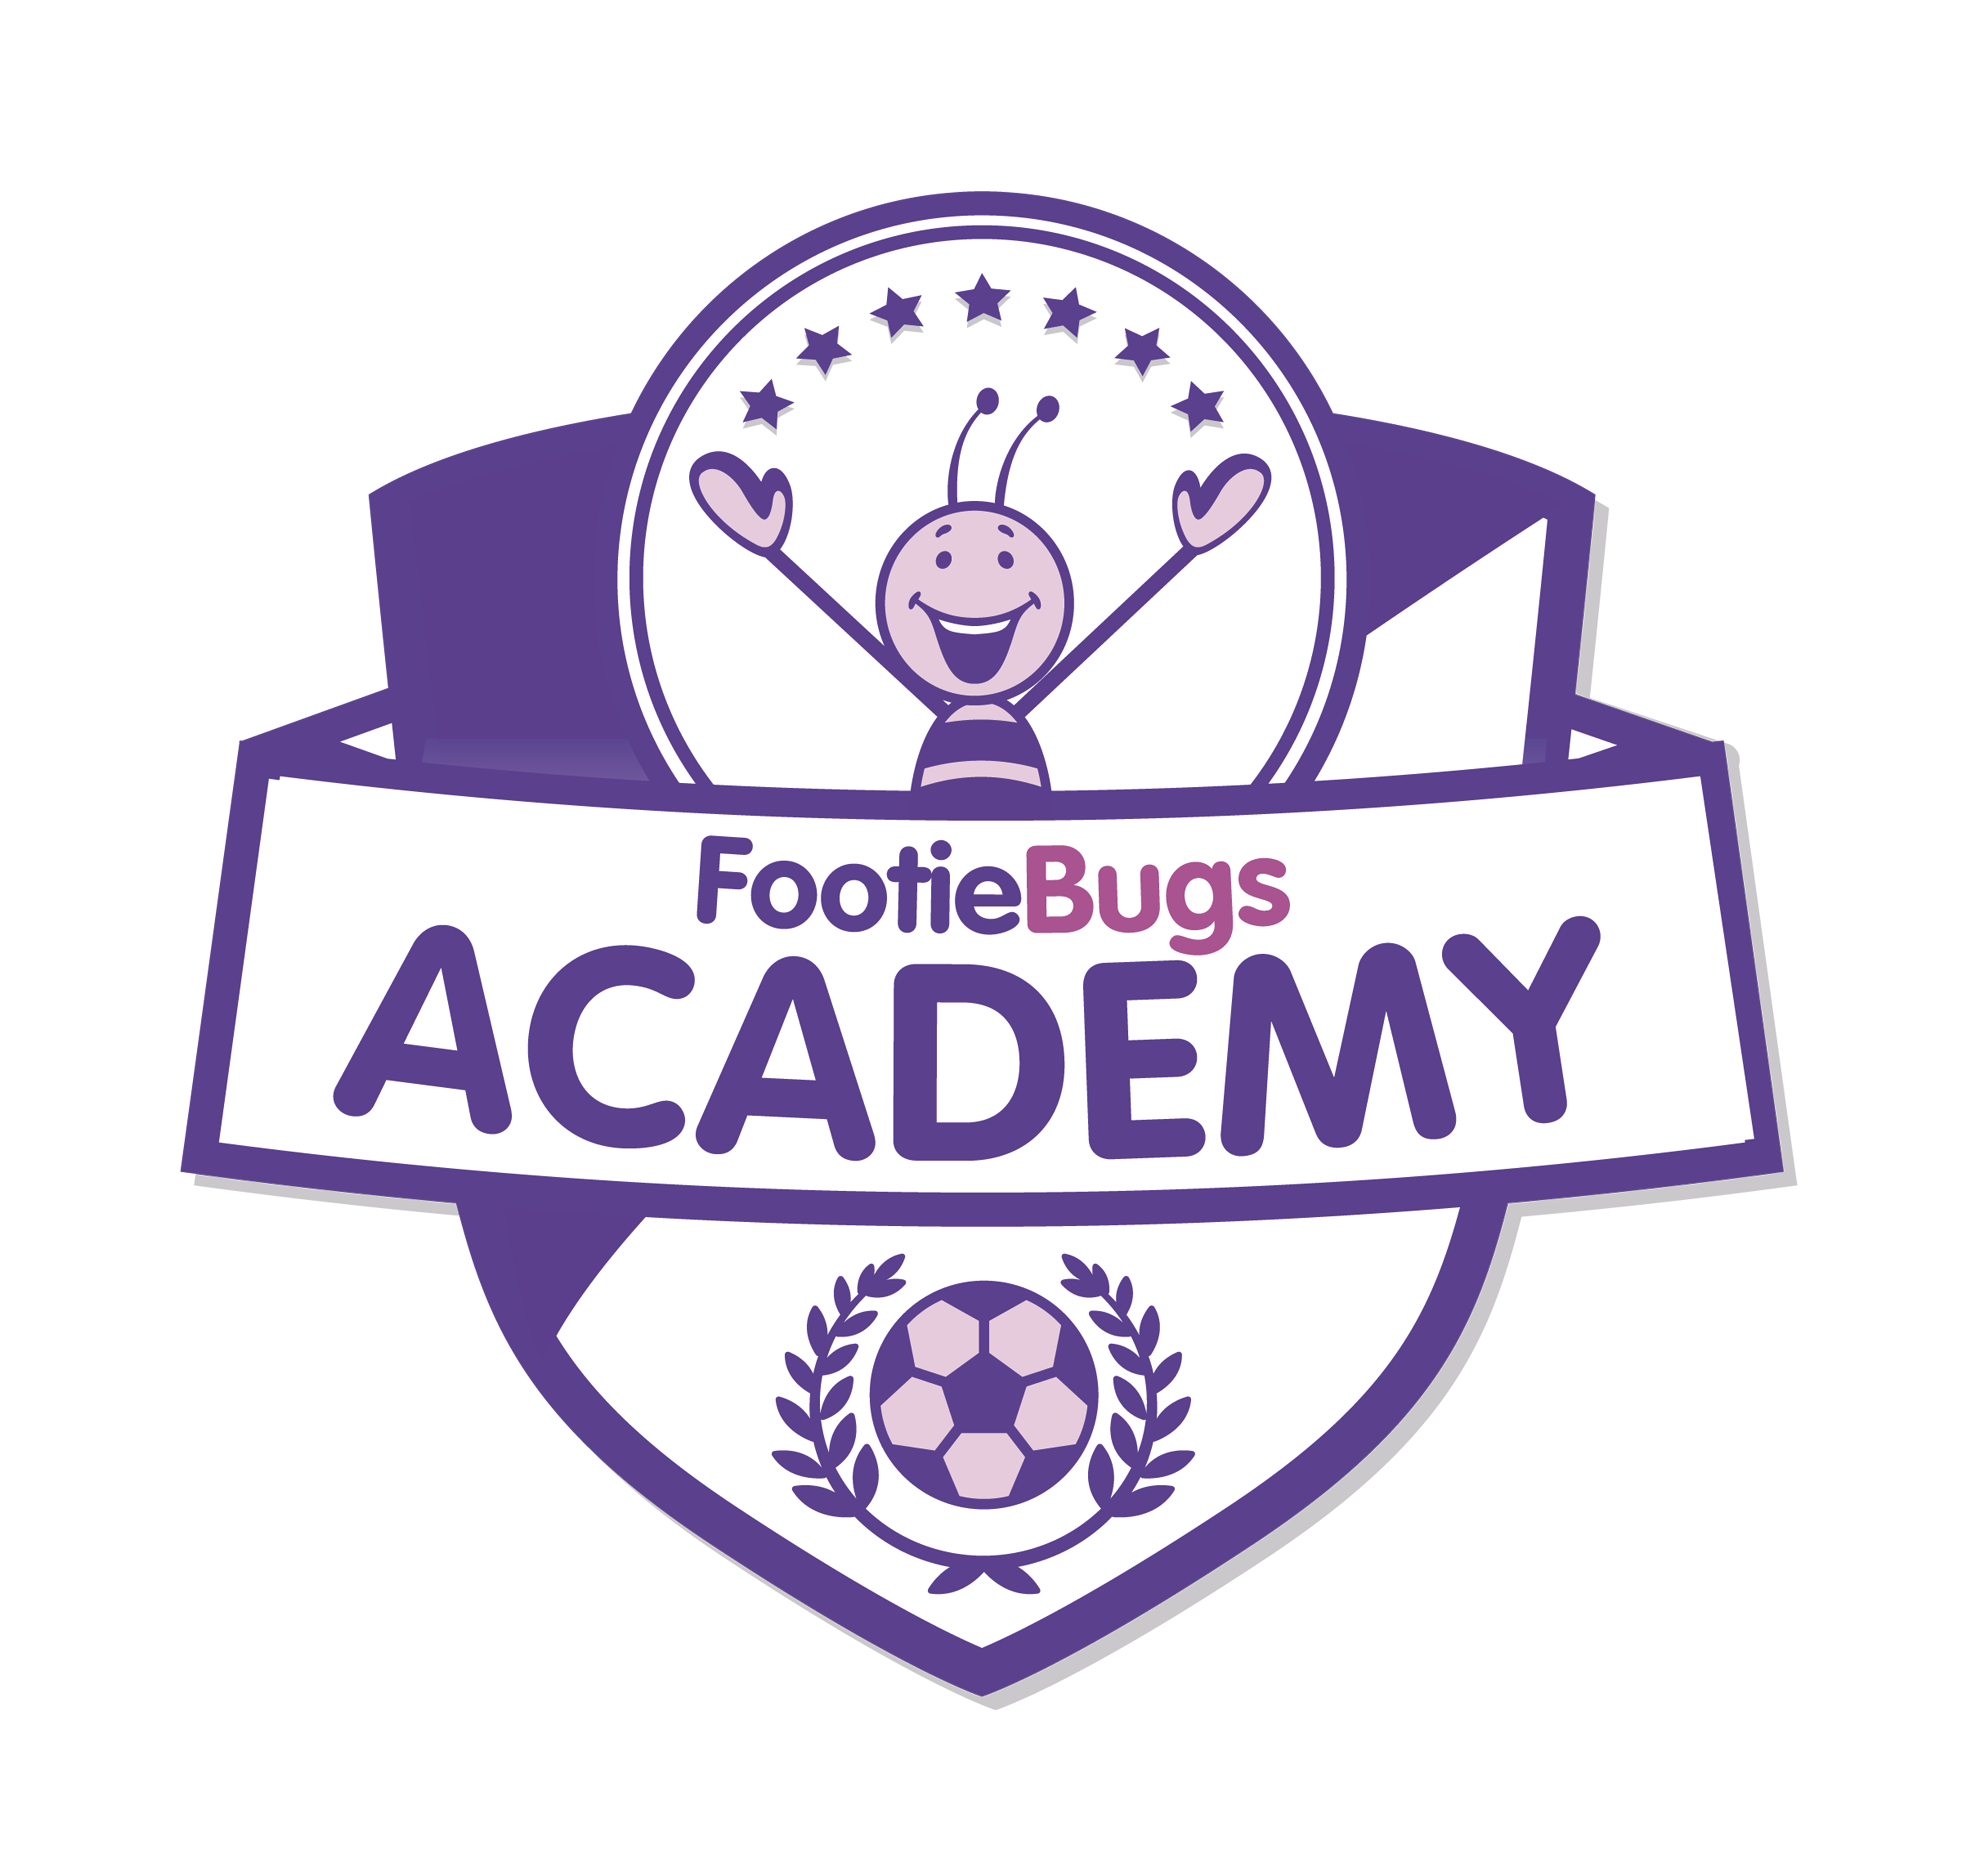 FootieBugs - Professional and fun football for kids ages 3-11 years!